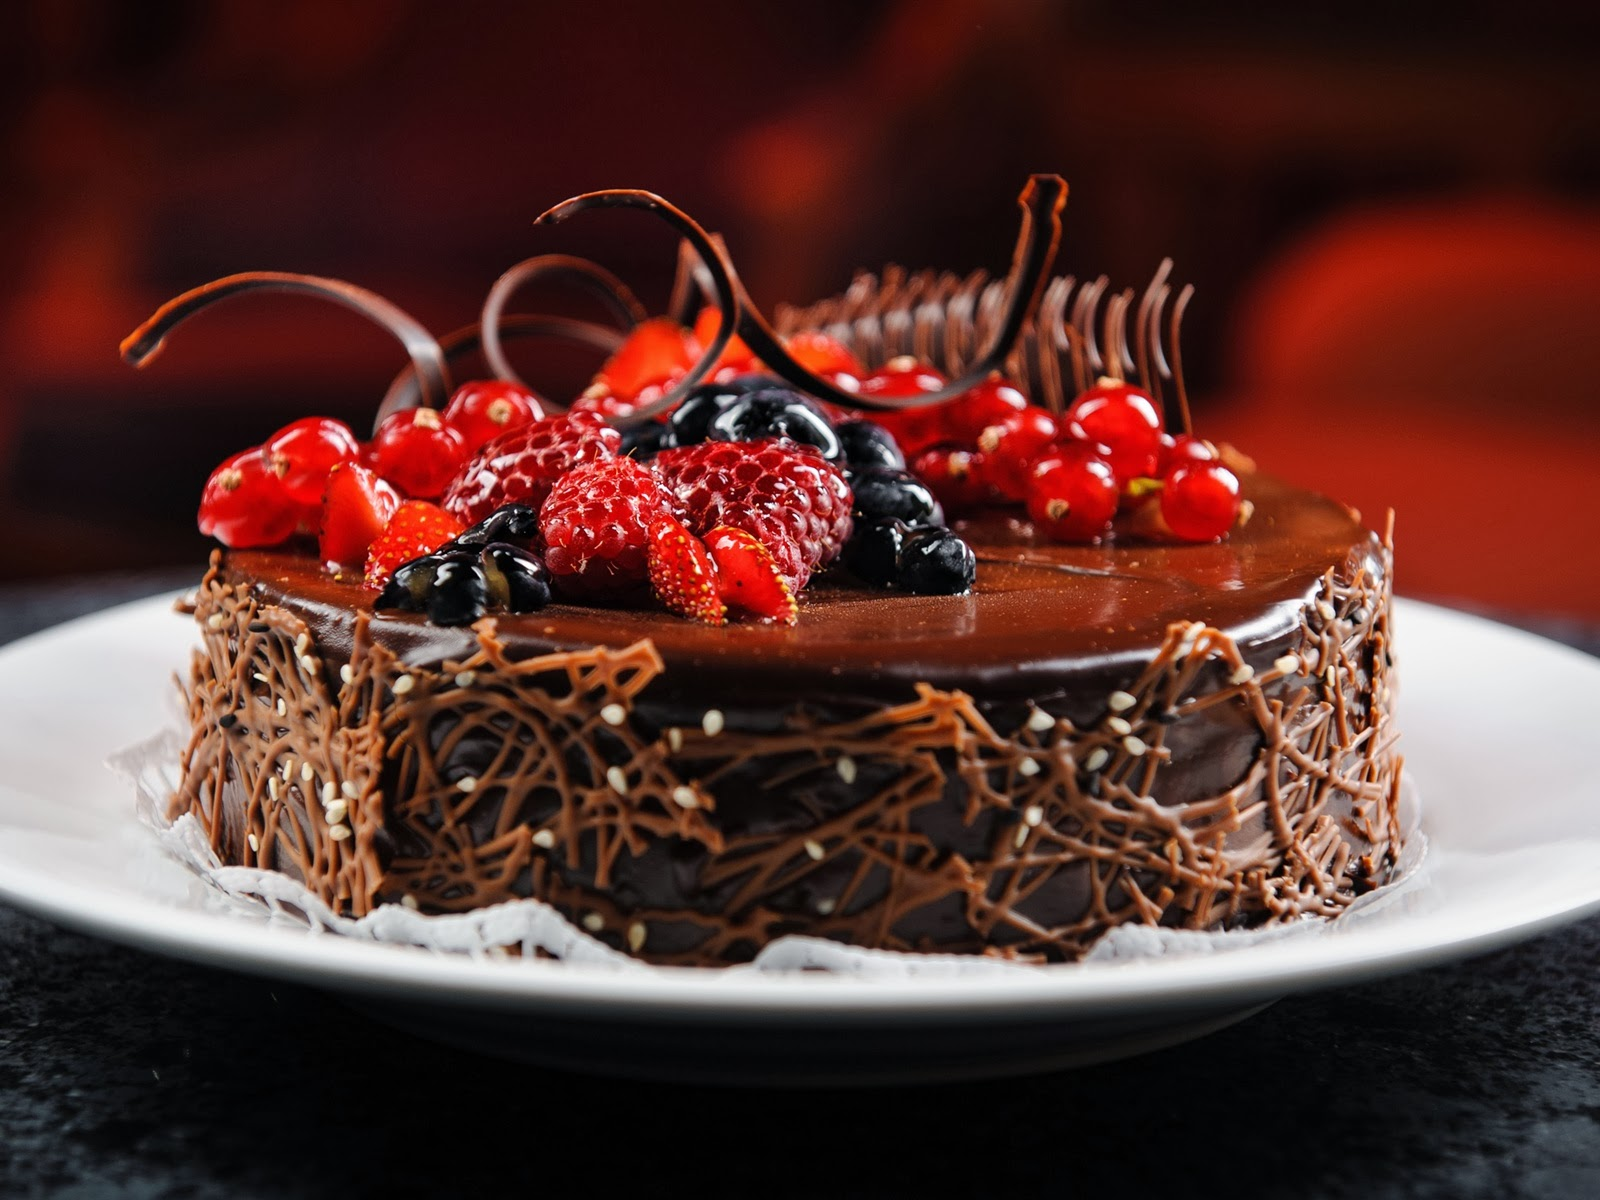 Chocolate Cake Images Free Download : Chocolate Cake HD Wallpapers Free Download ~ Unique Wallpapers